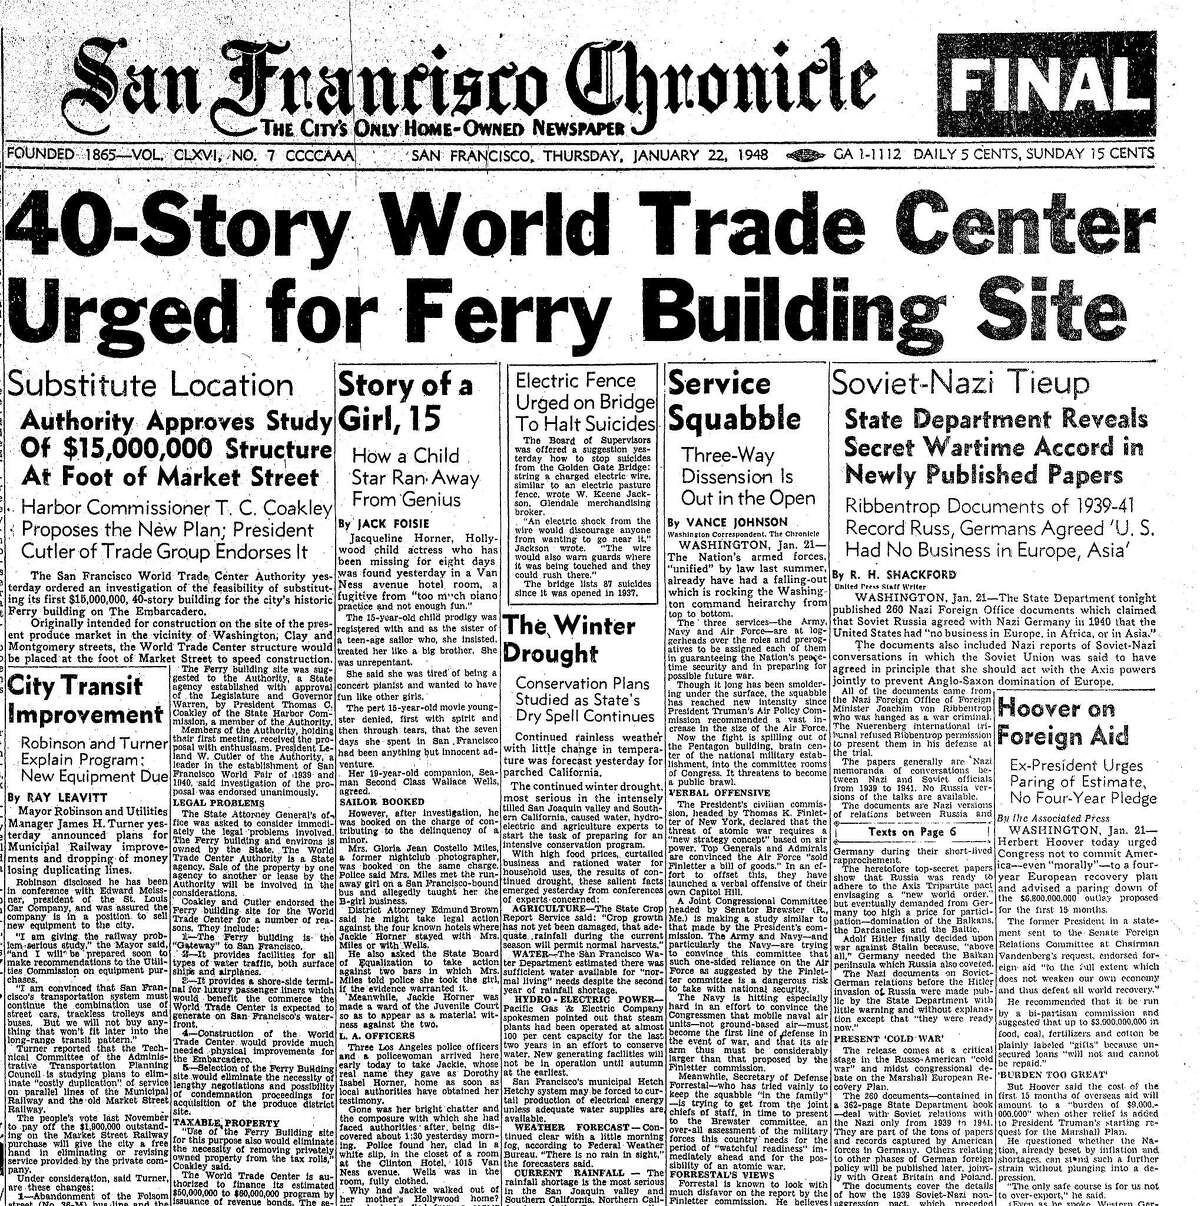 The January 22, 1948 Chronicle reported on plans to tear down the old Ferry Building, and replace it with a 40-story World Trade Center building